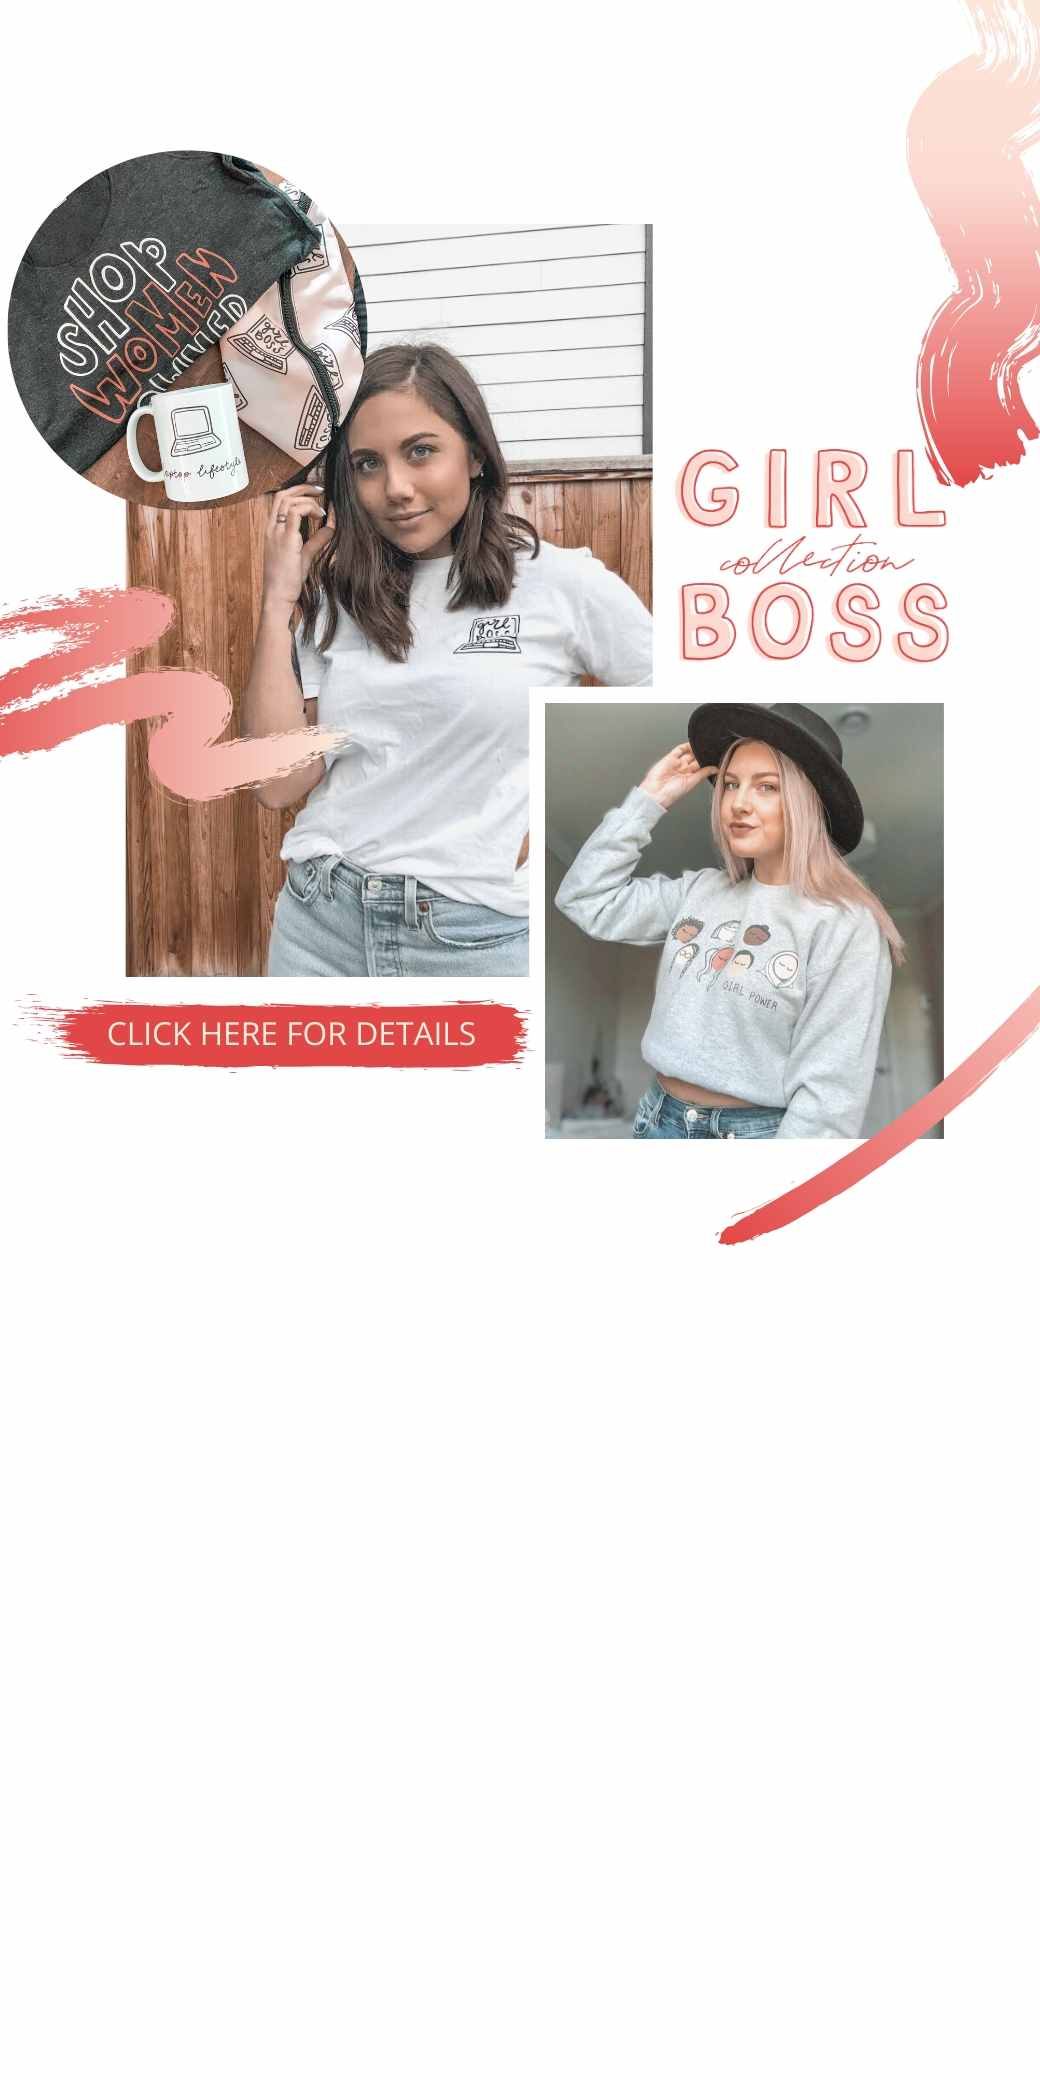 girl boss collection brand ambassador